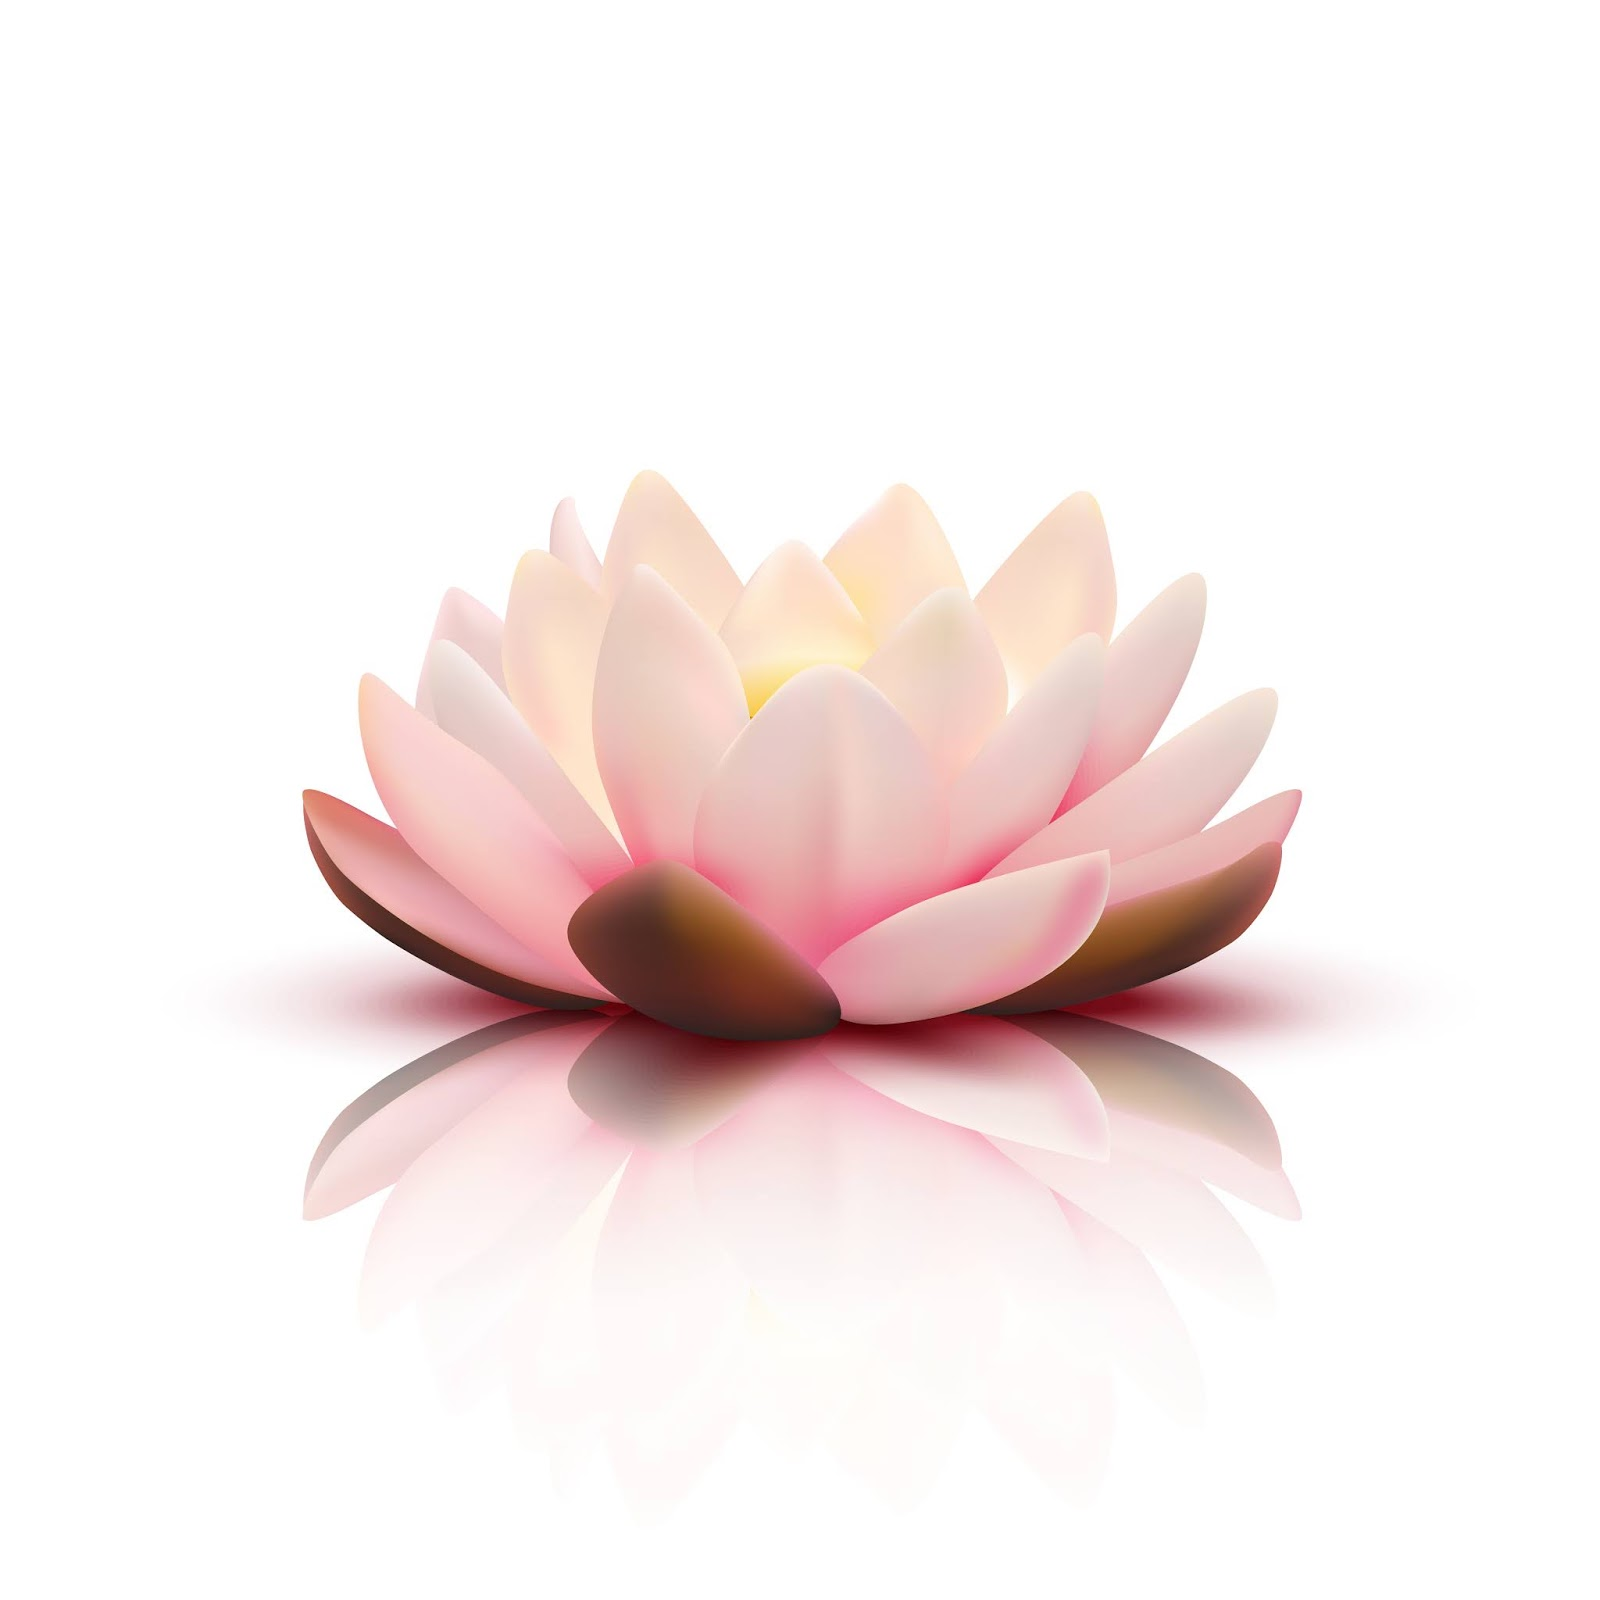 Isolated Flower Lotus With Light Pink Petals With Reflection Free Download Vector CDR, AI, EPS and PNG Formats